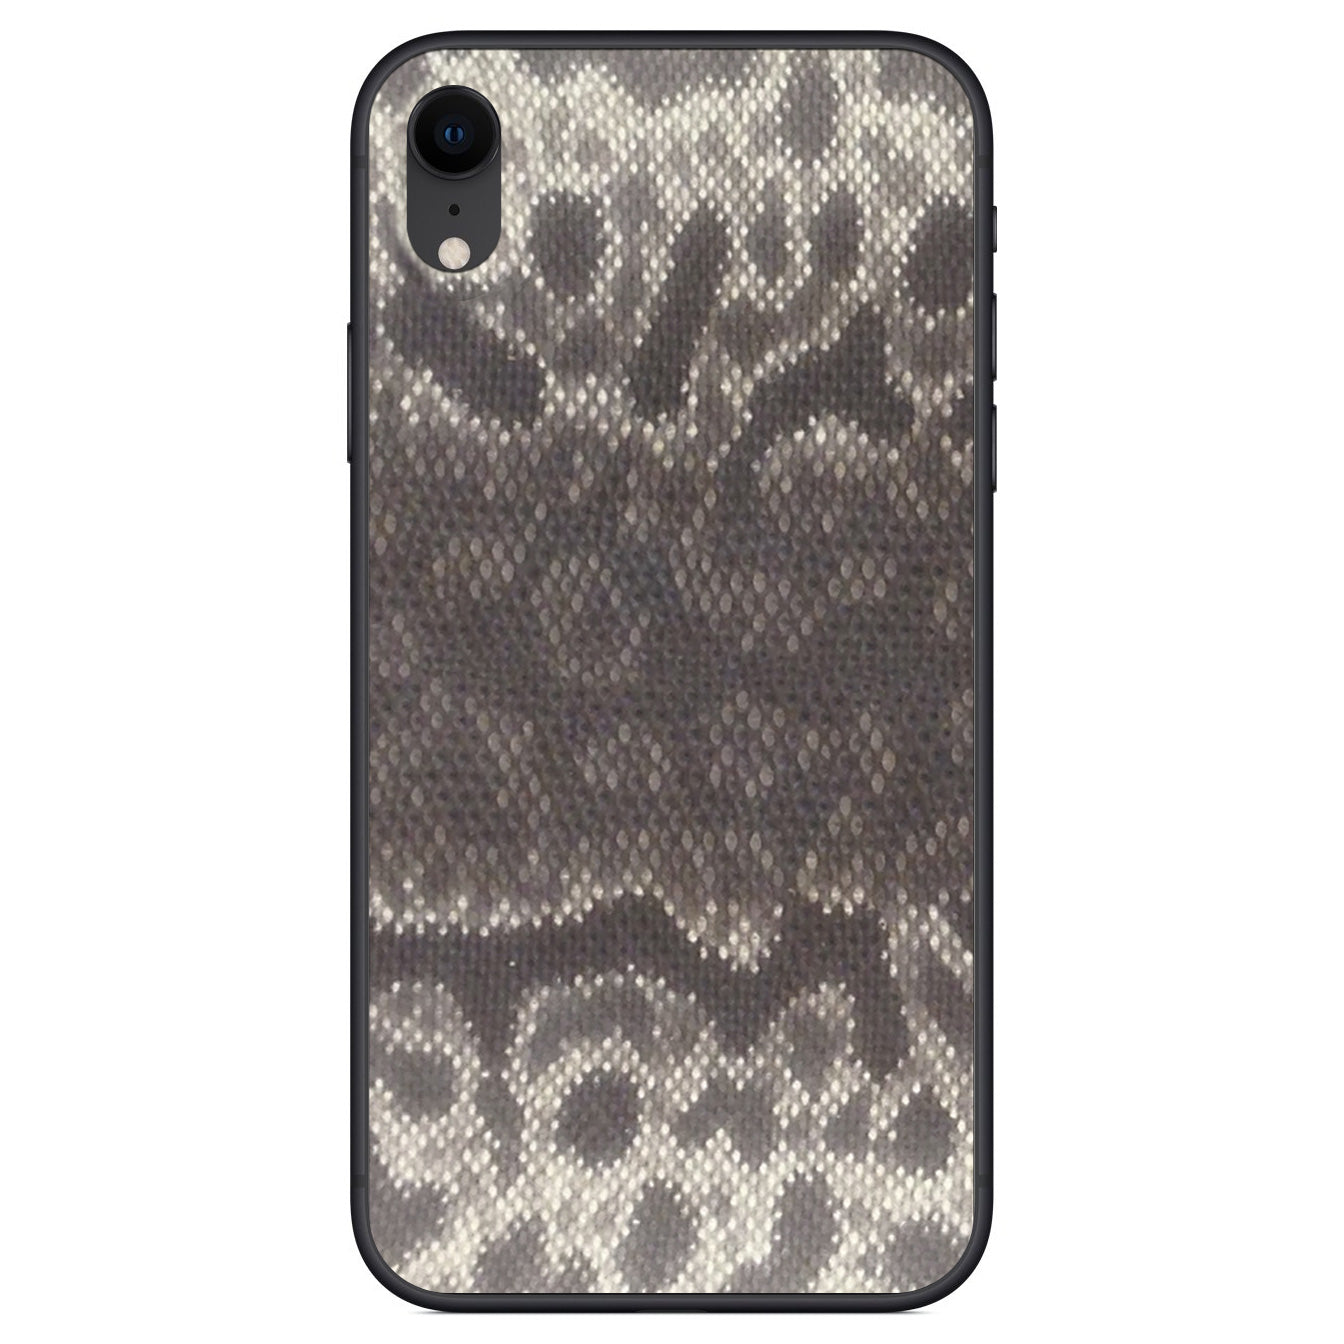 Karung Snake iPhone XR Leather Skin